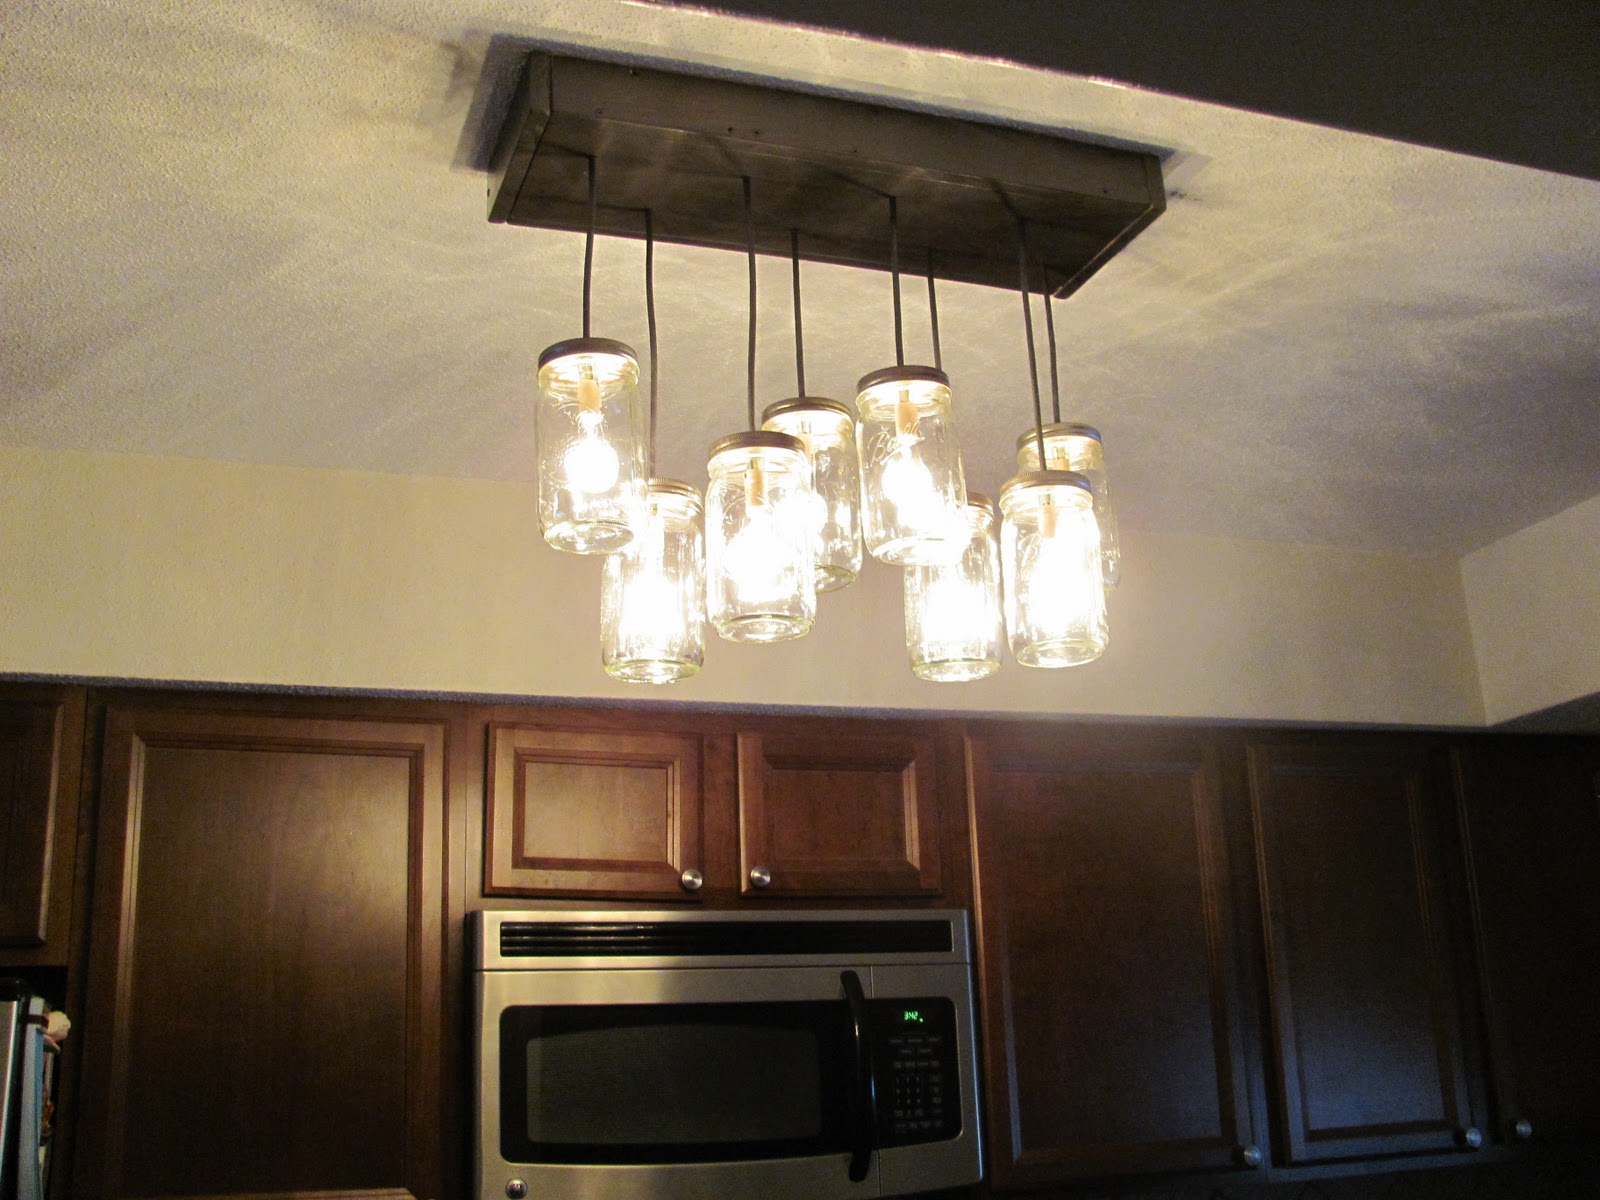 Mason Jar Lighting Fixtures Drop Ceiling Lovidsgco Pottery Barn Inspired Mason Jar Chandelier Lauren Mcbride